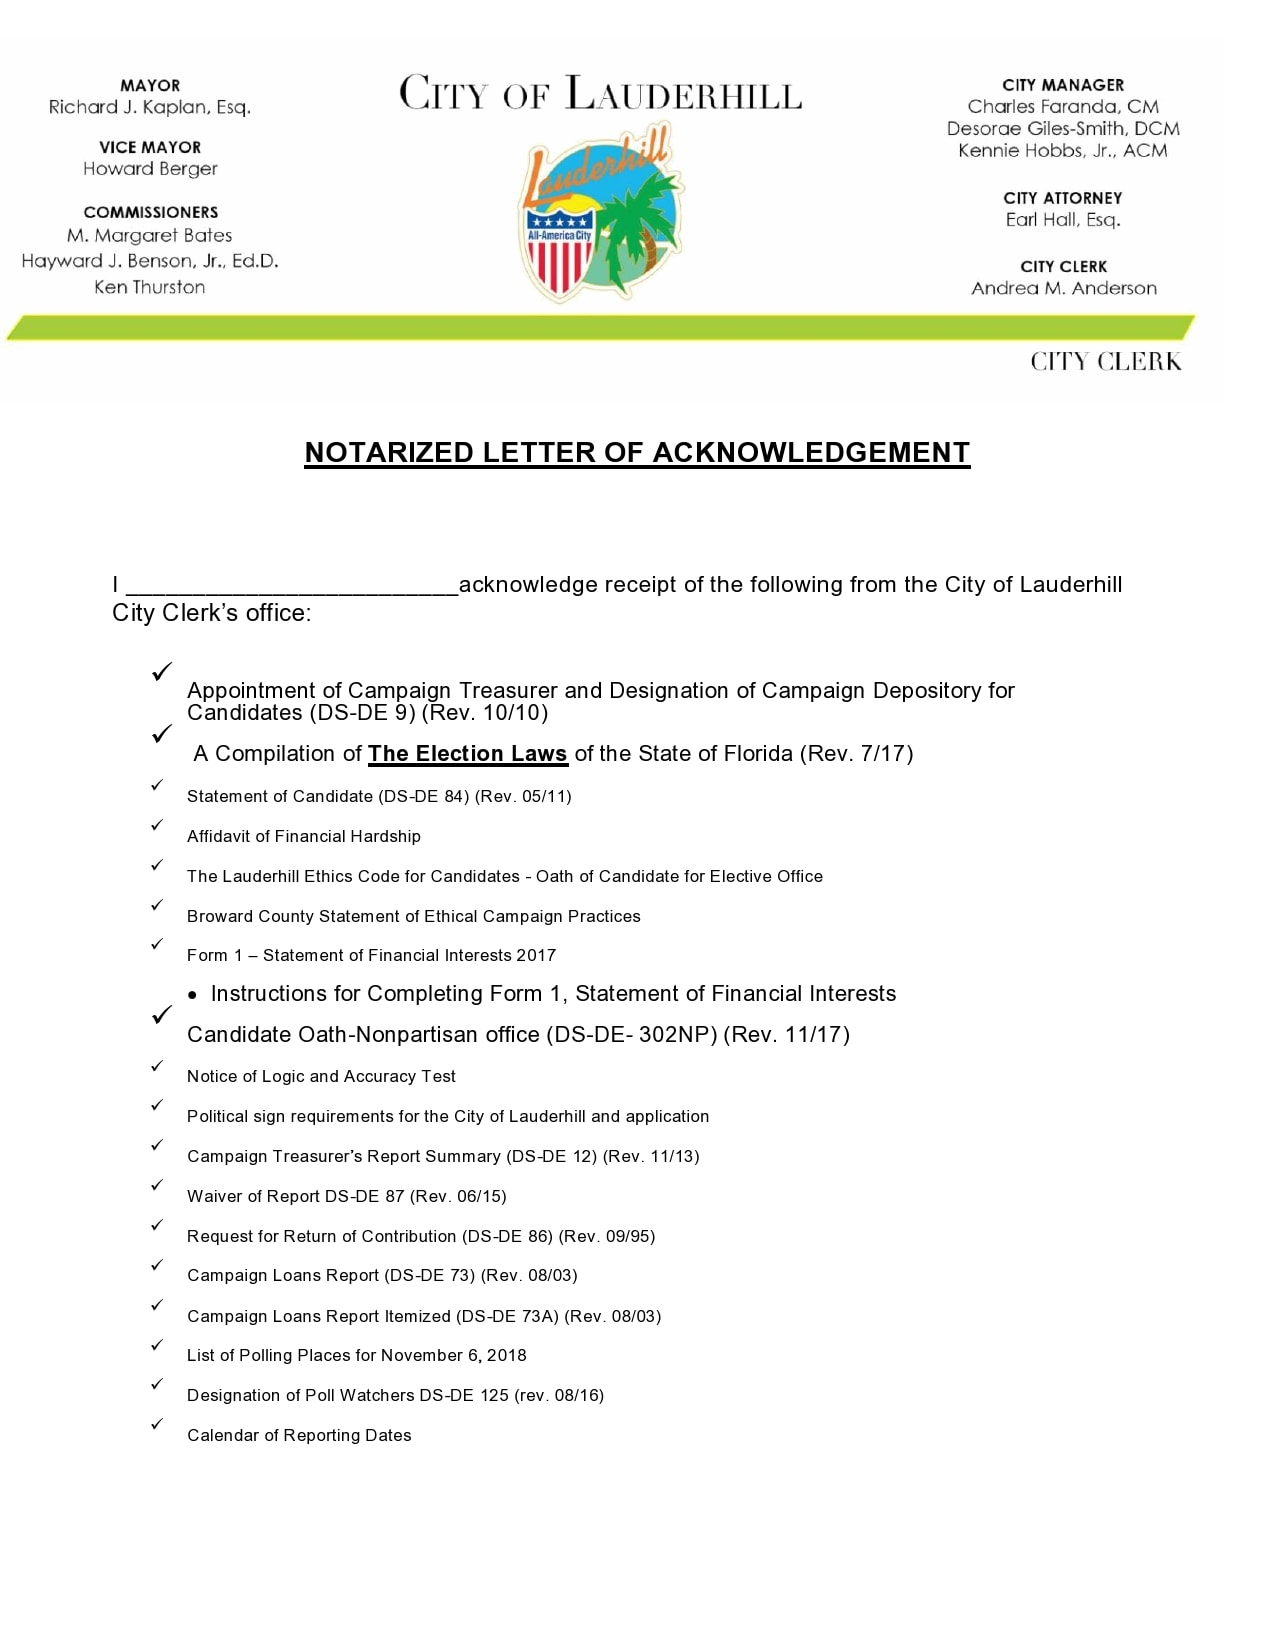 30 free notarized letter templates notary letters